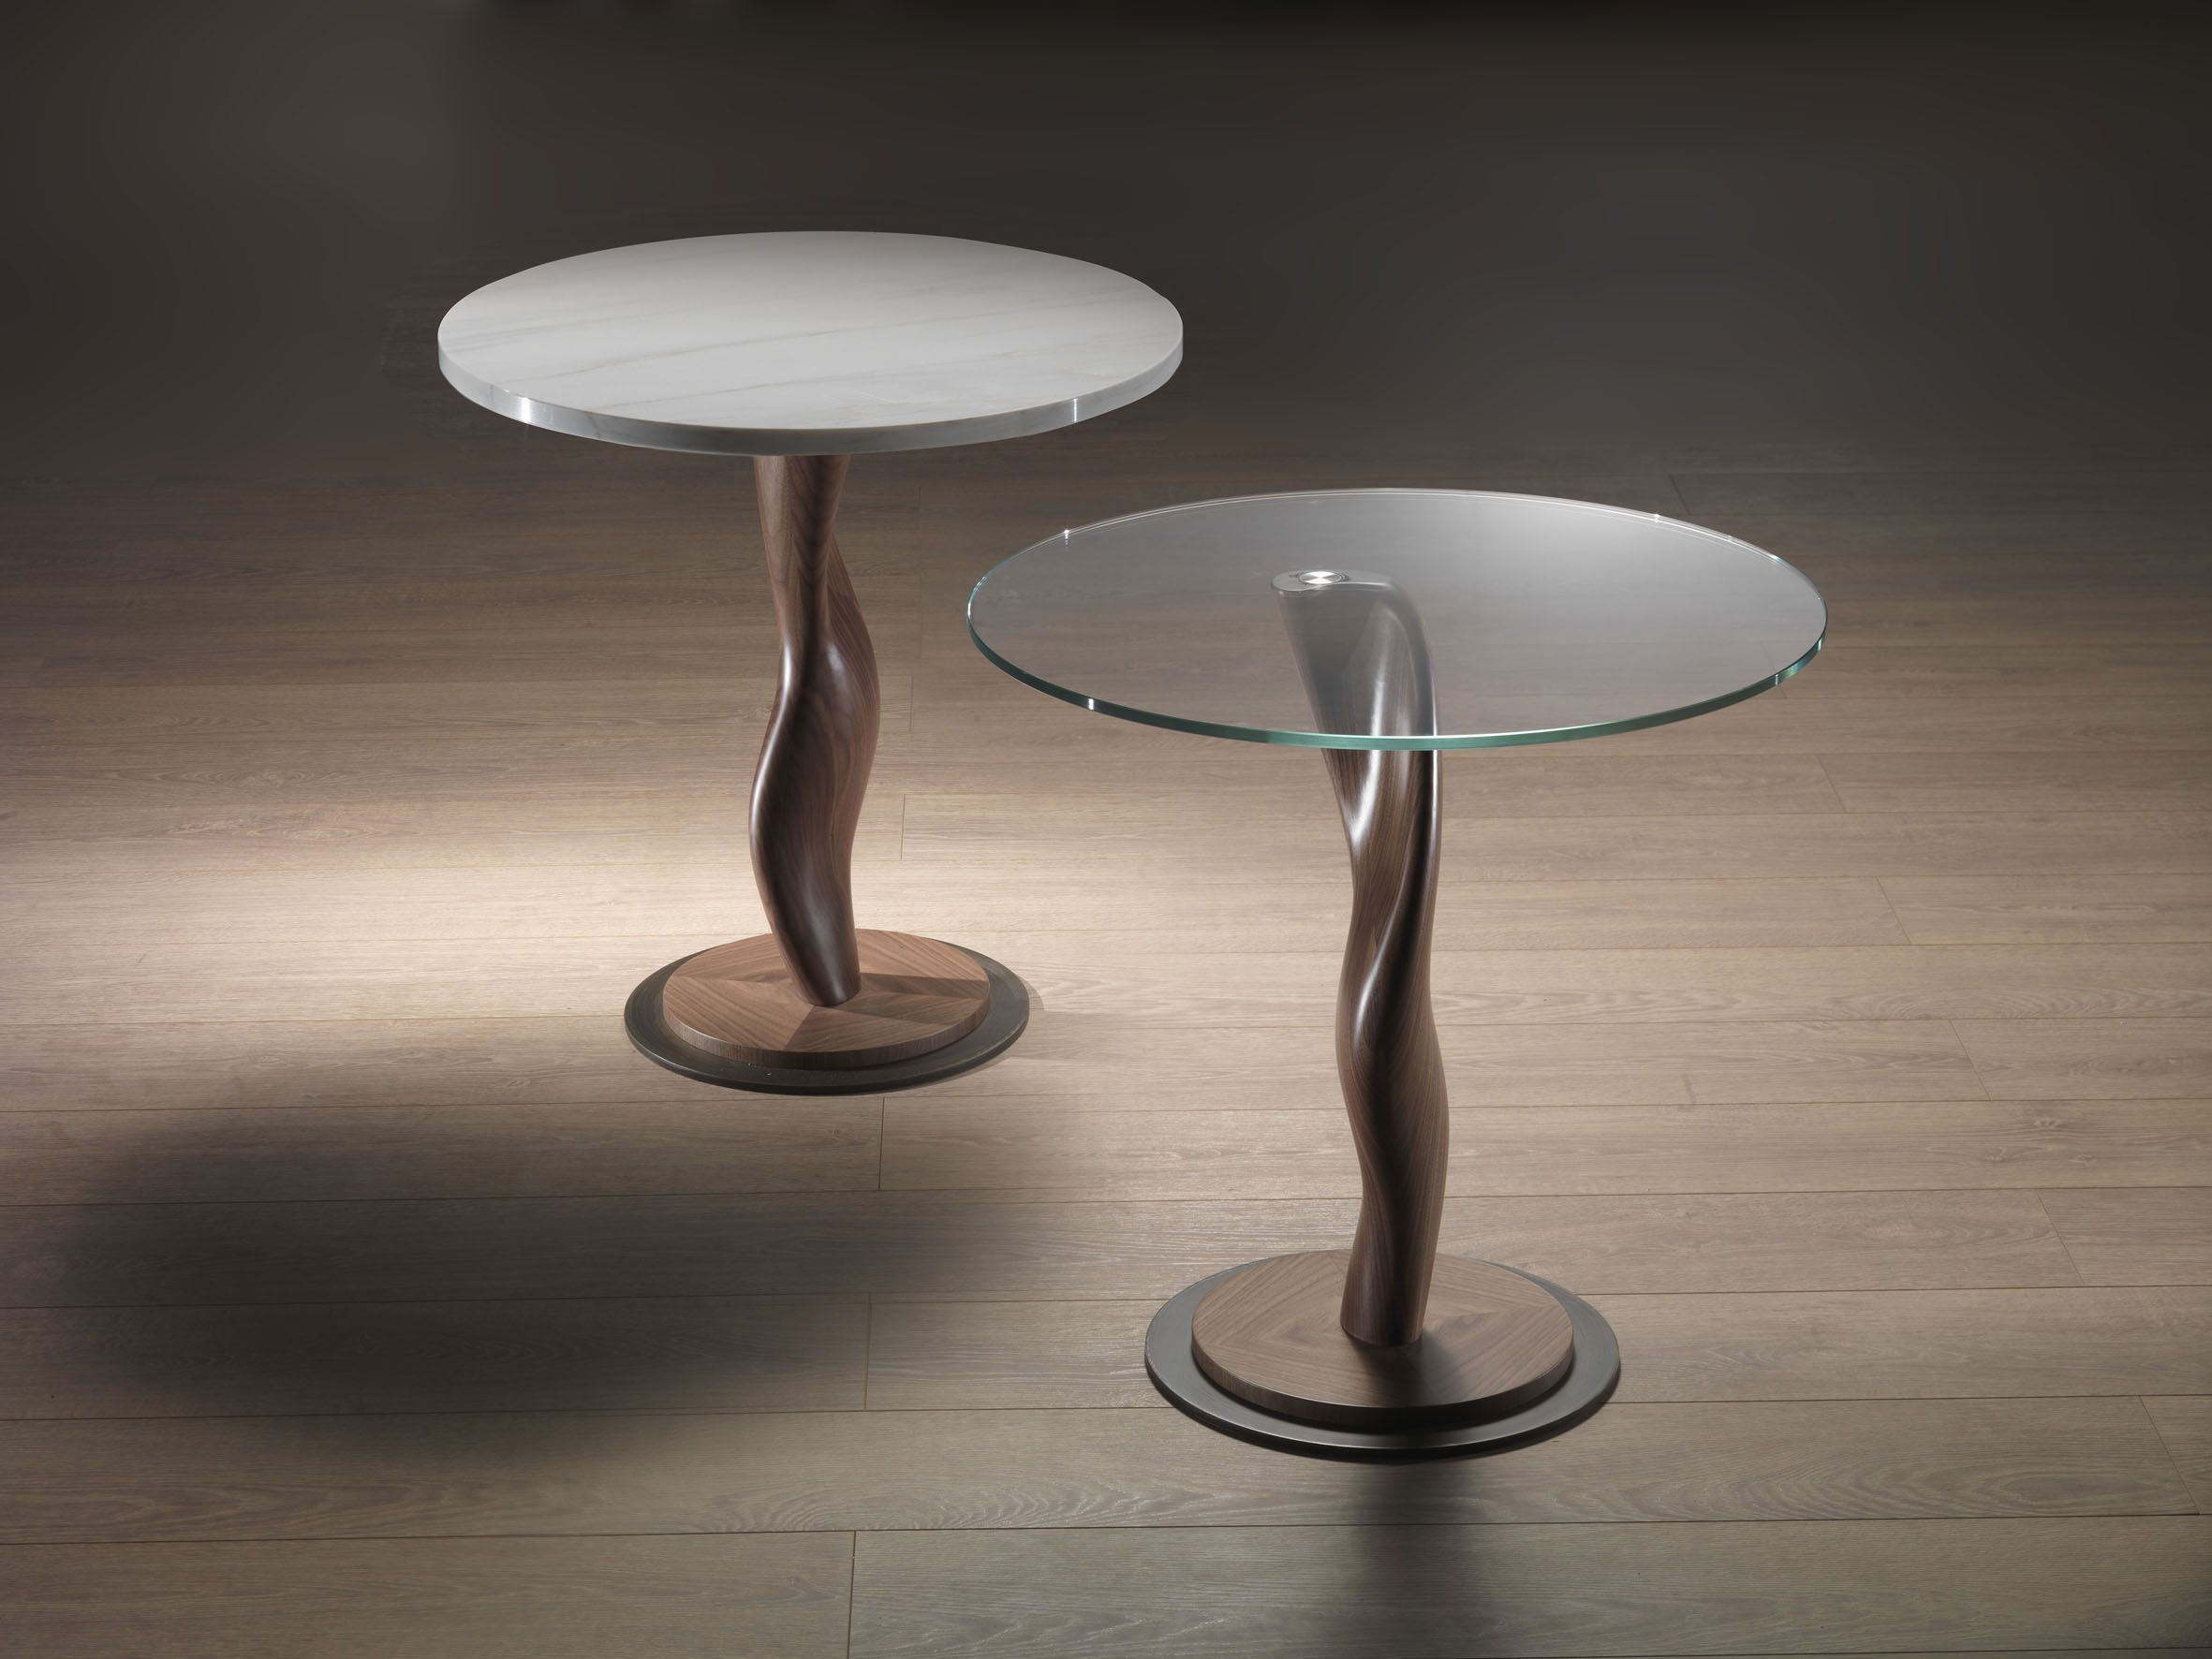 2013 collection by Carpanelli Contemporary www